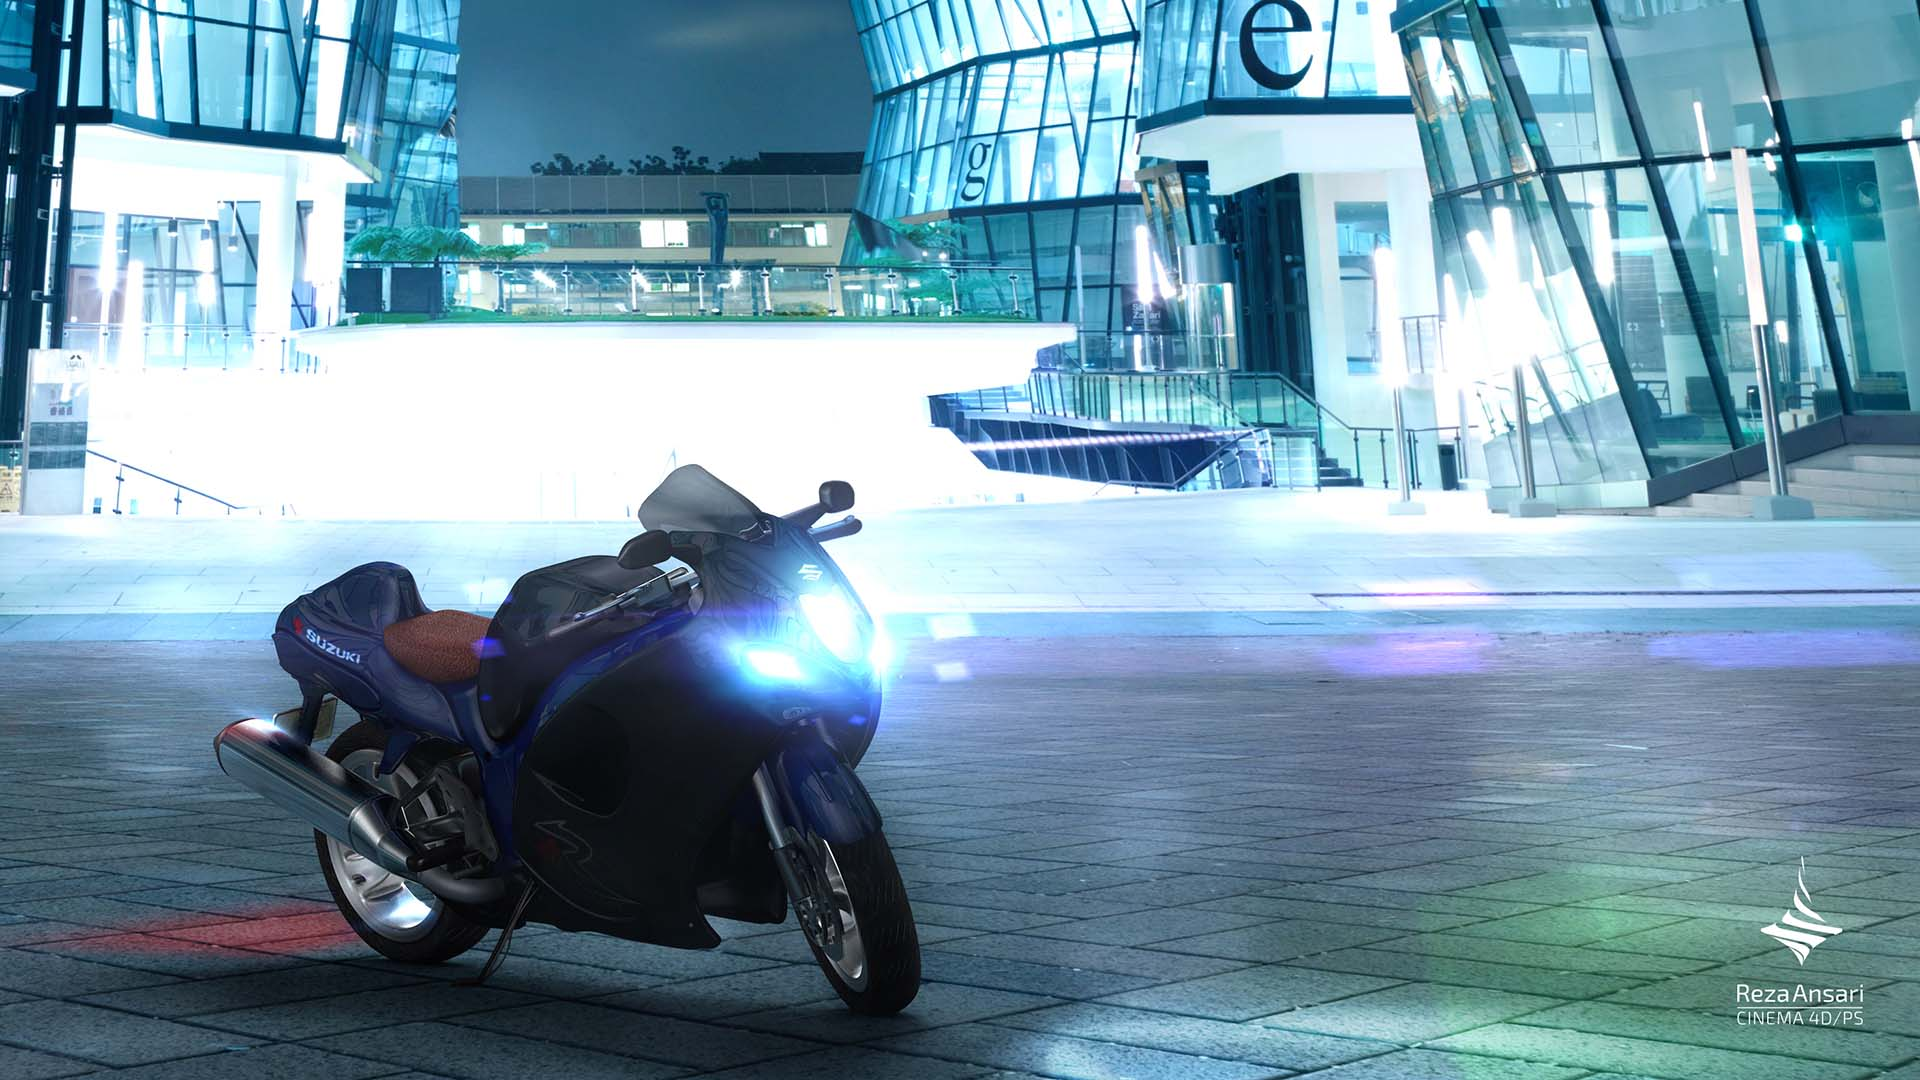 Motorcycle (2)